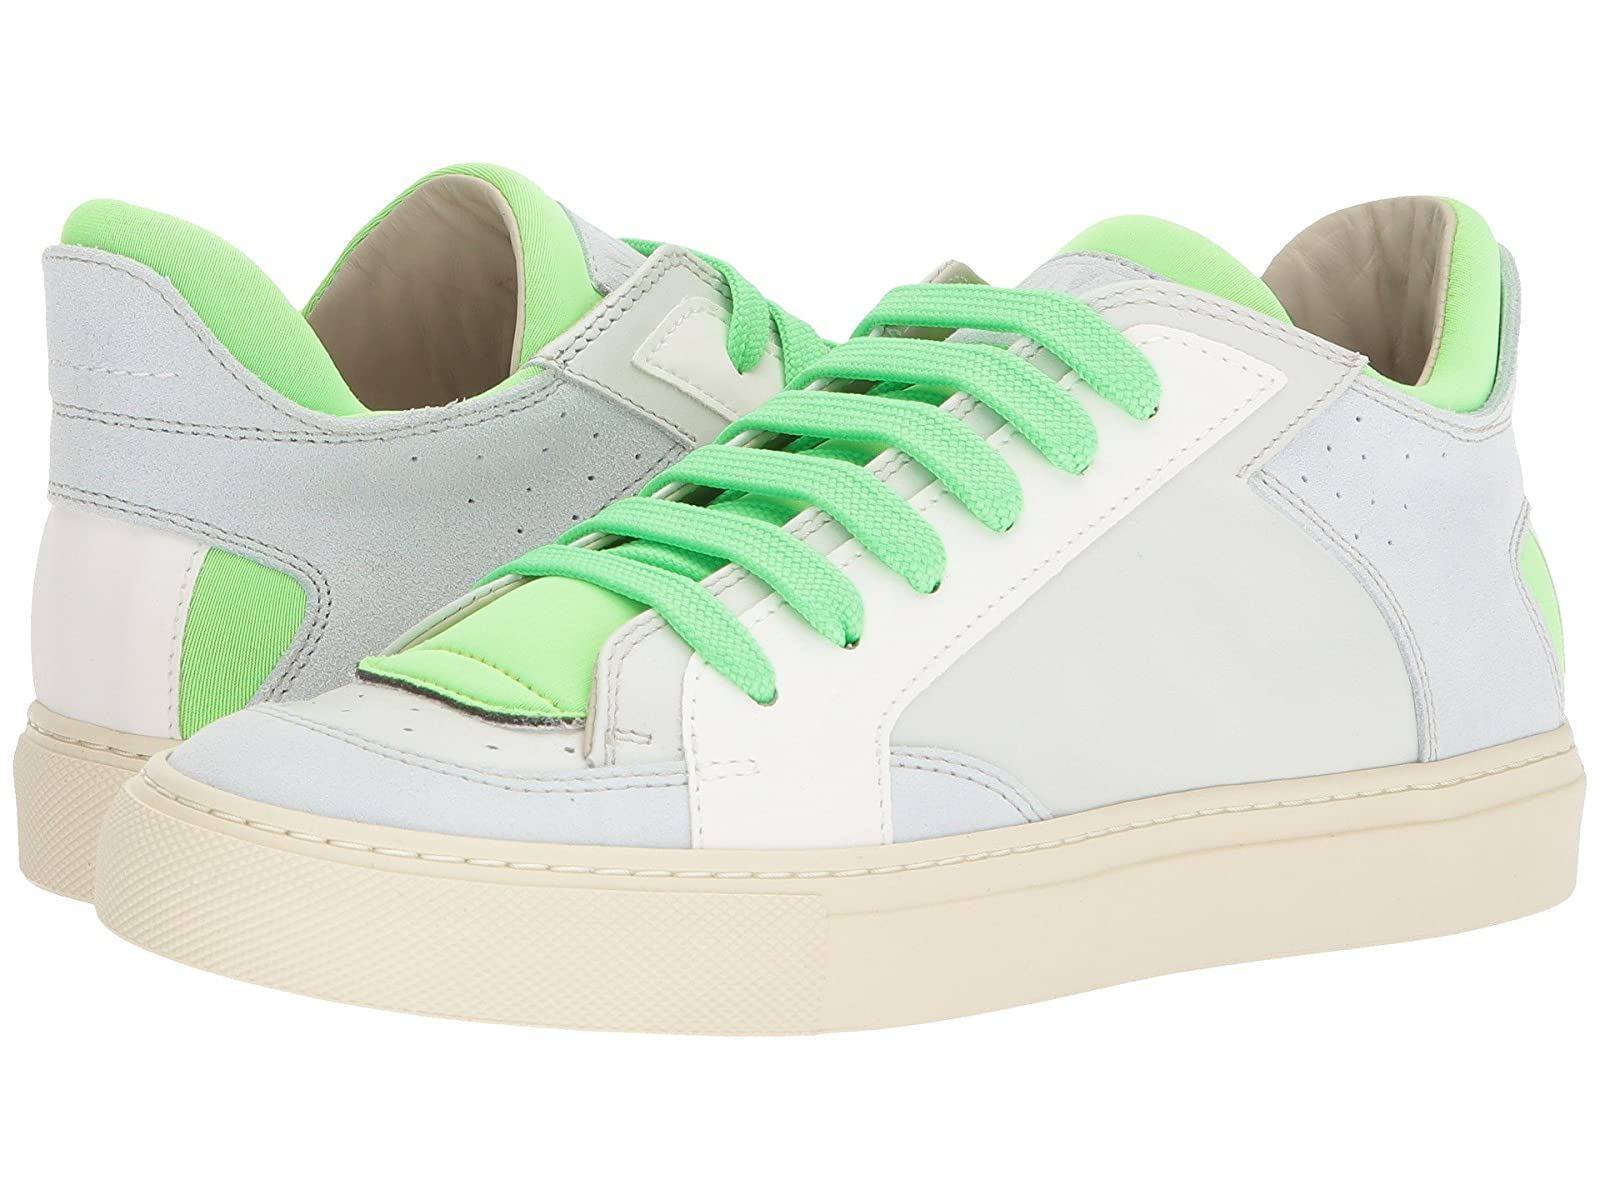 MM6 Maison Margiela Neon Pop Low TrainerAtmospheric grades have affordable shoes